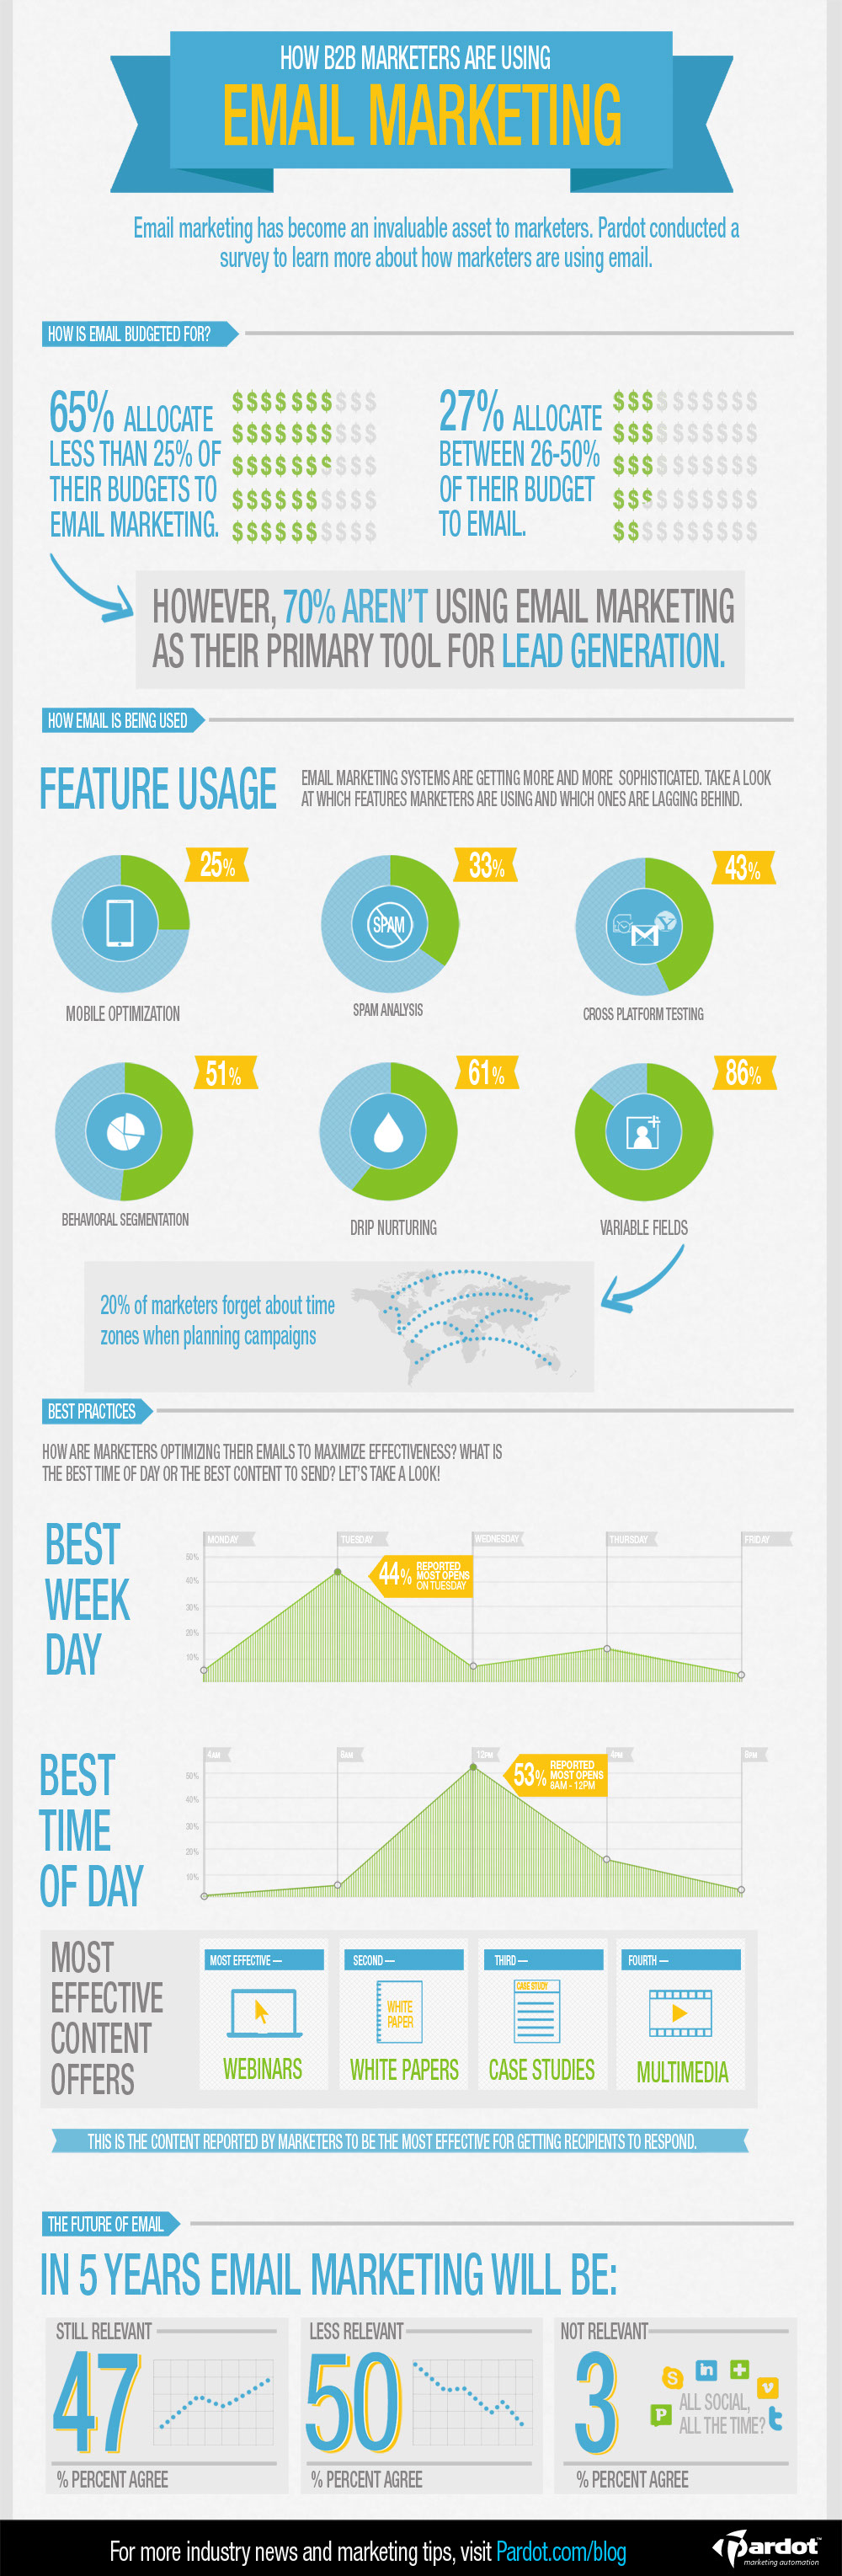 b2b email marketing best practices - iNFOGRAPHiCs MANiA